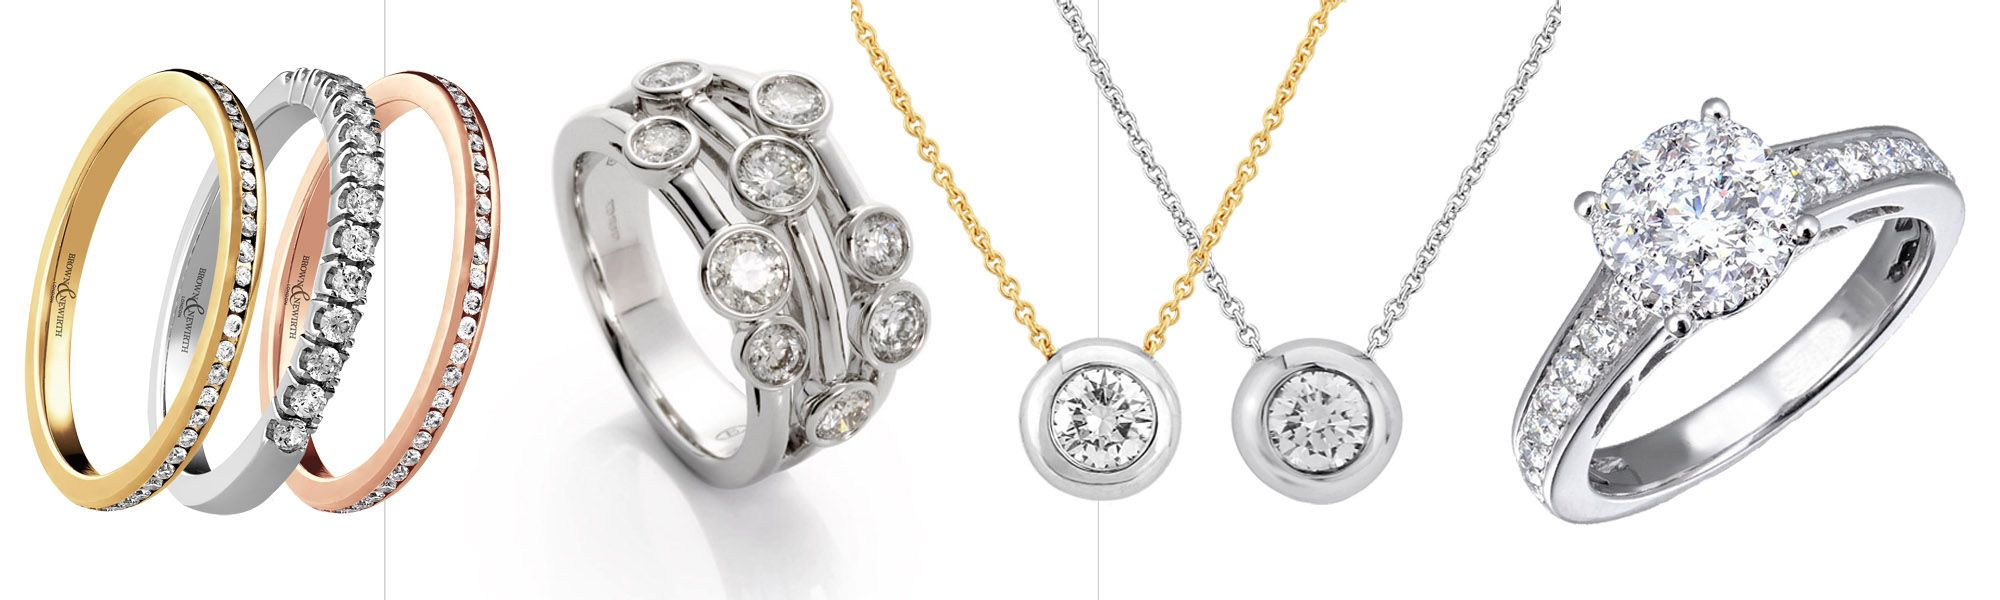 Diamond Jewellery Collections from Thorntons Jewellers Kettering Northampton